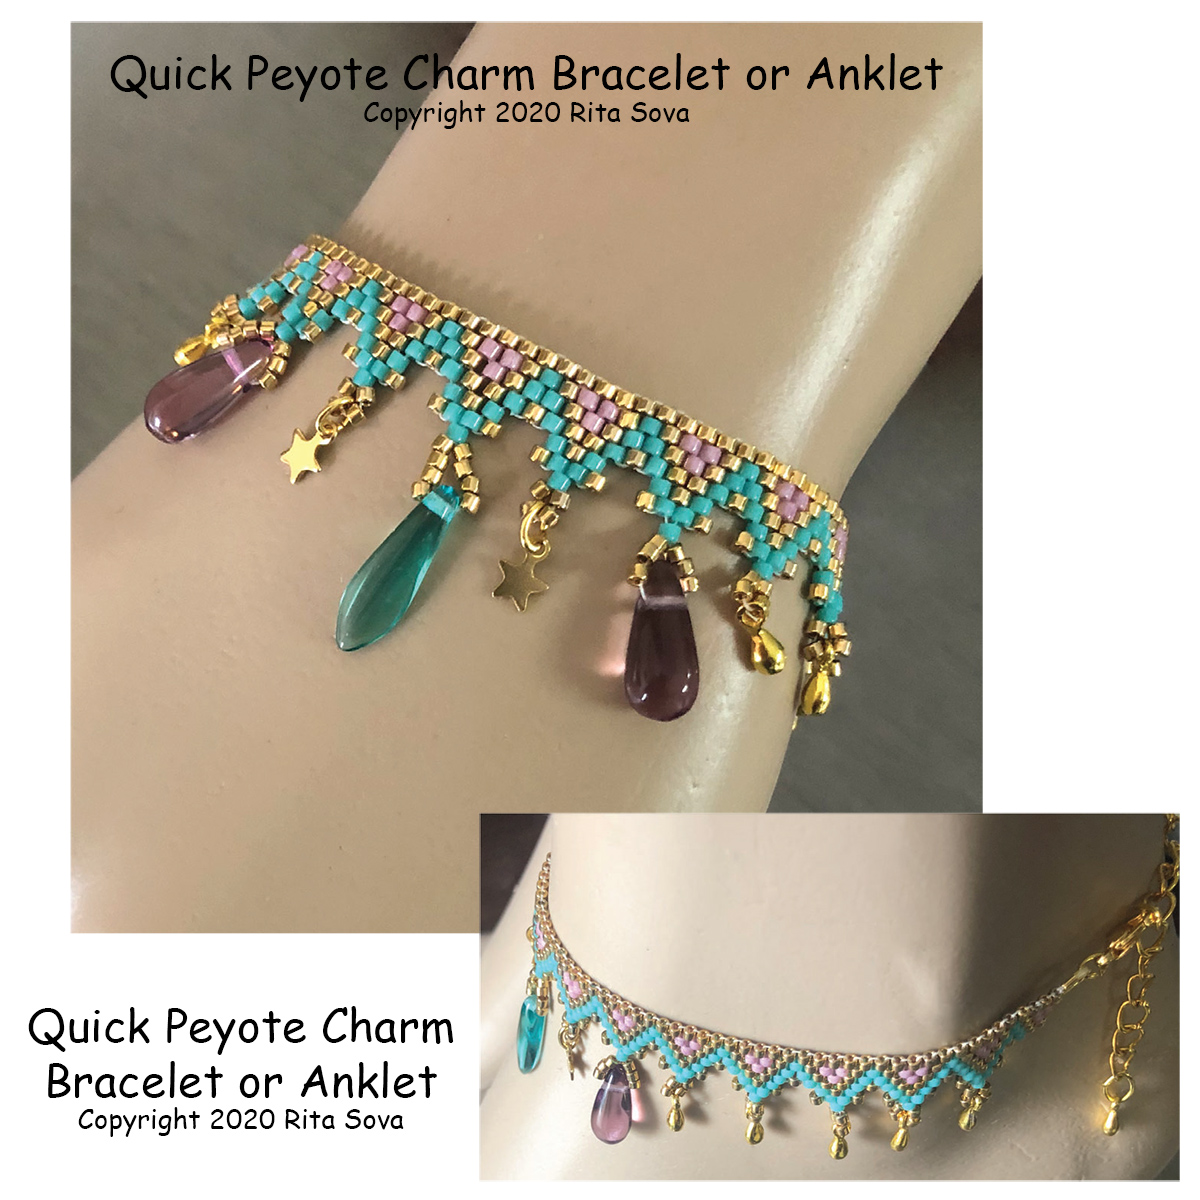 Quick Peyote Charm Bracelet or Anklet